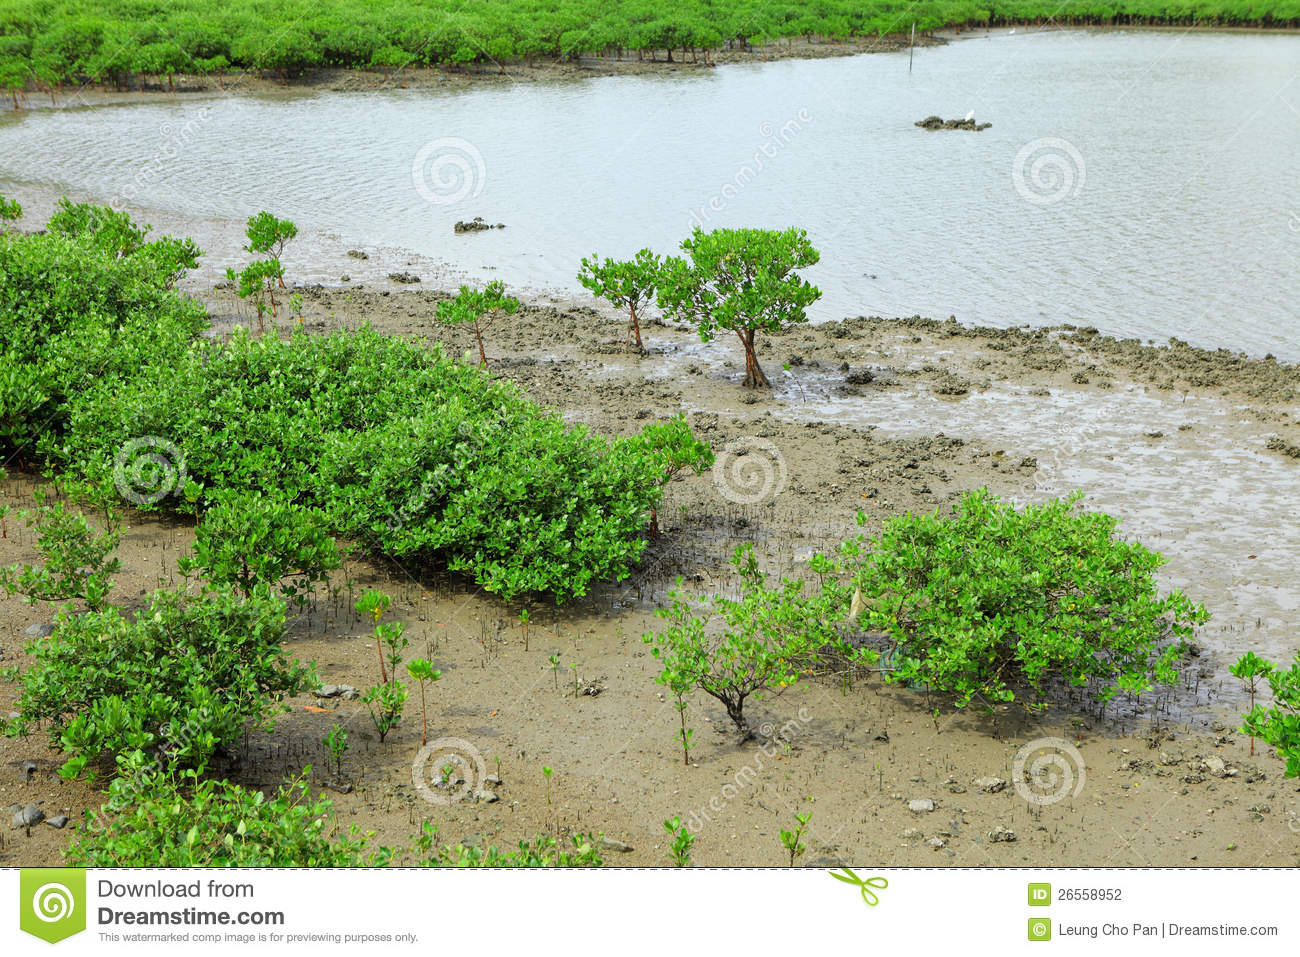 Red Mangroves forest